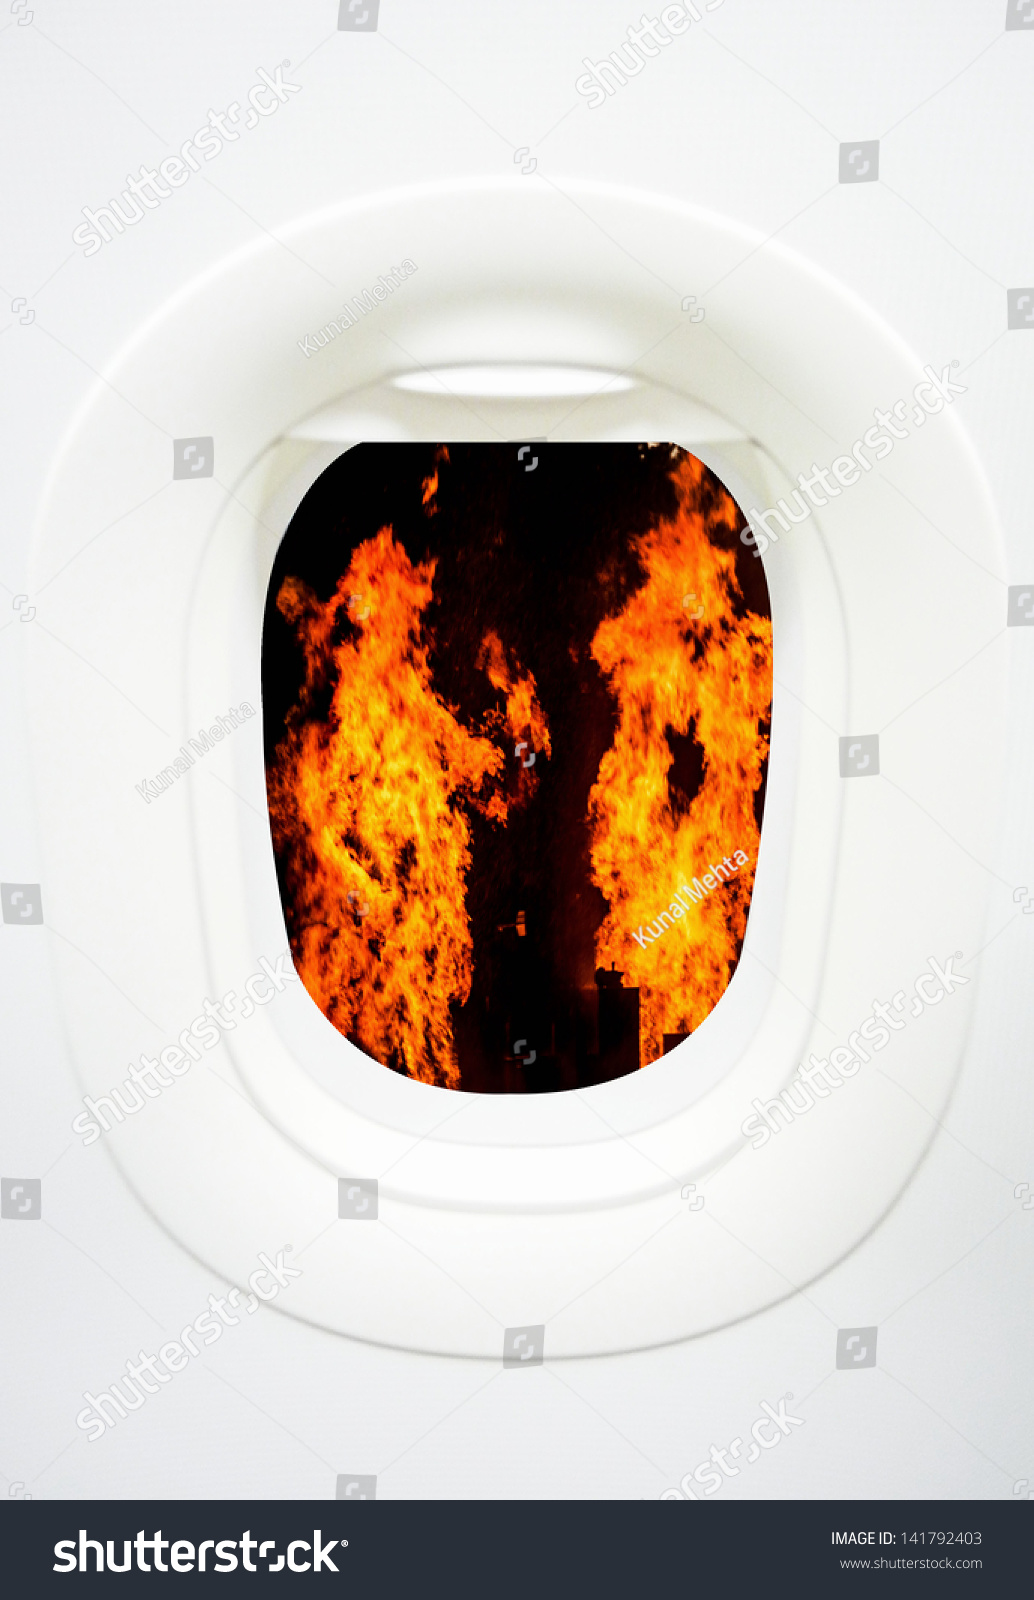 Concept Visualizing Airplane Air Craft Fire Stock Photo Edit Now